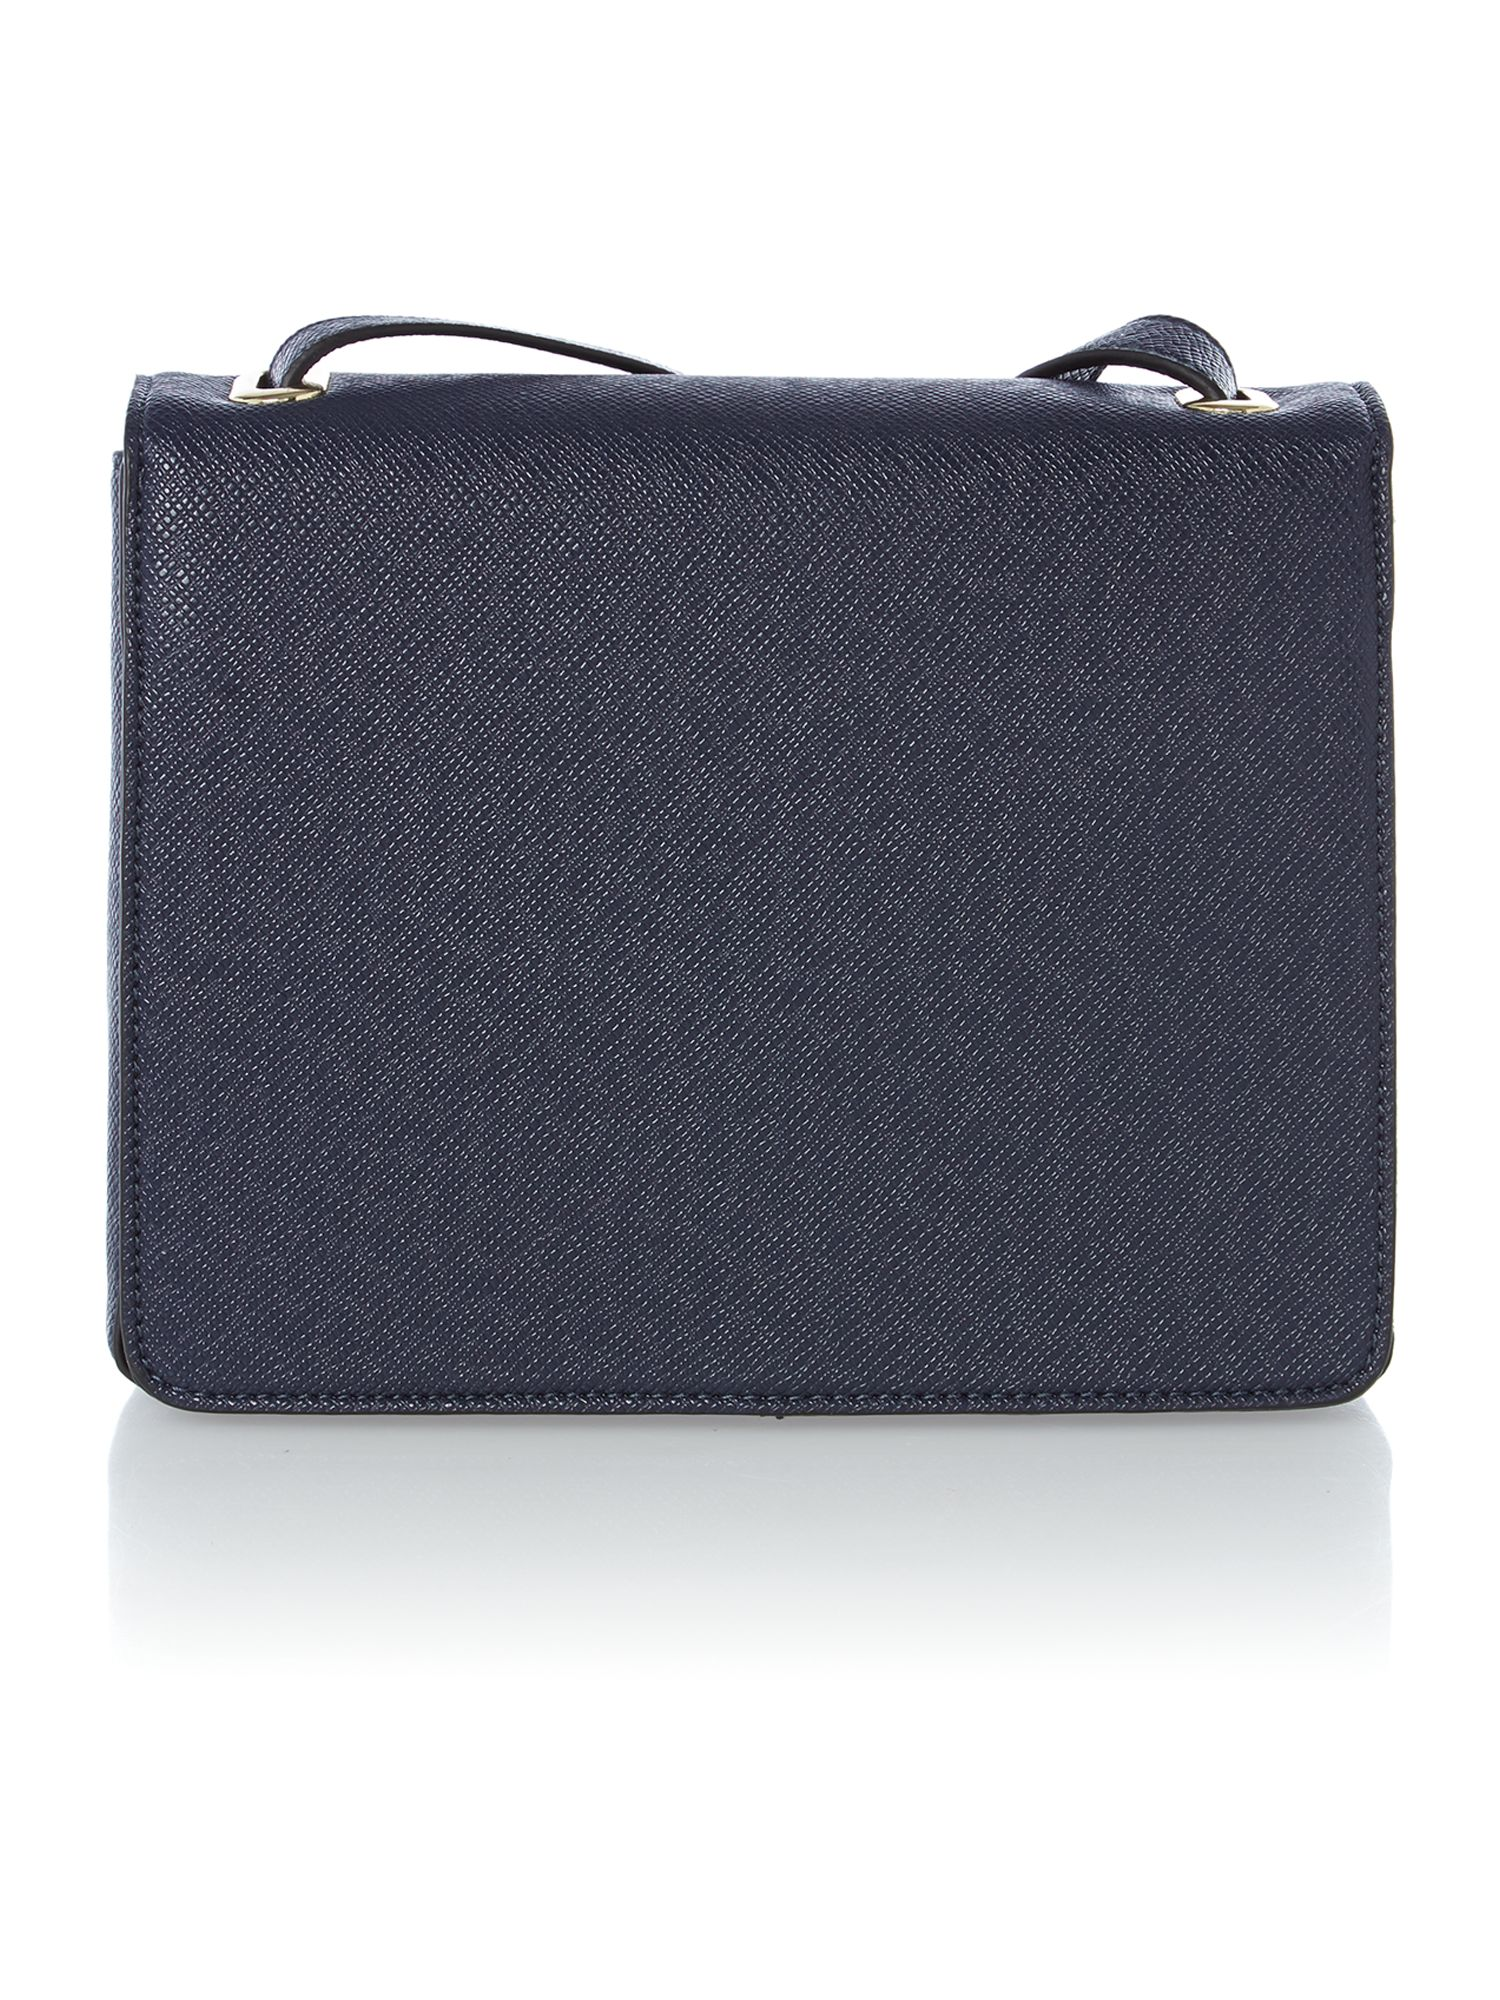 Navy small saffiano flapover cross body bag